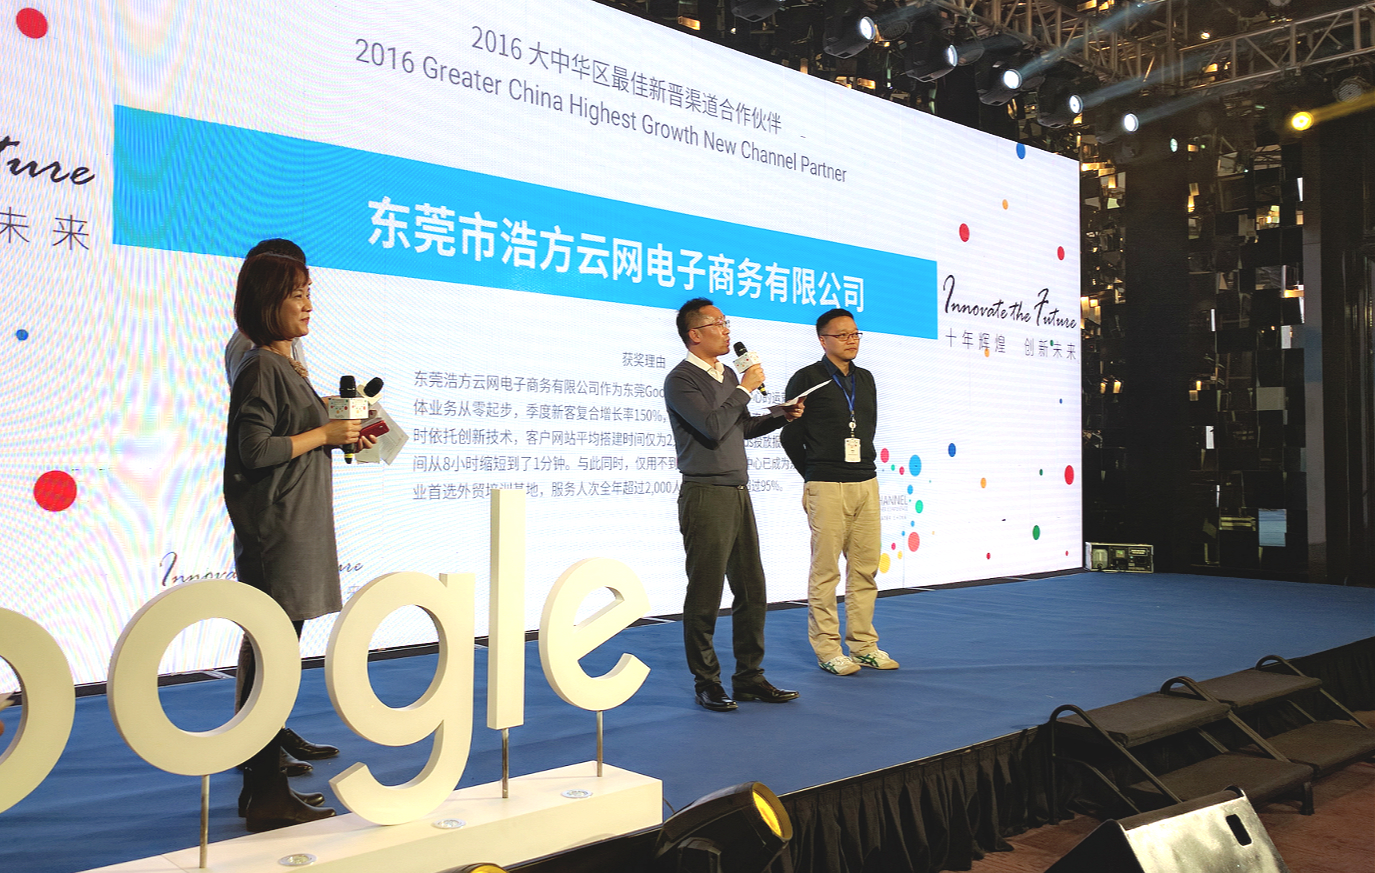 Google AdWords Dongguan experience center is eligible for th